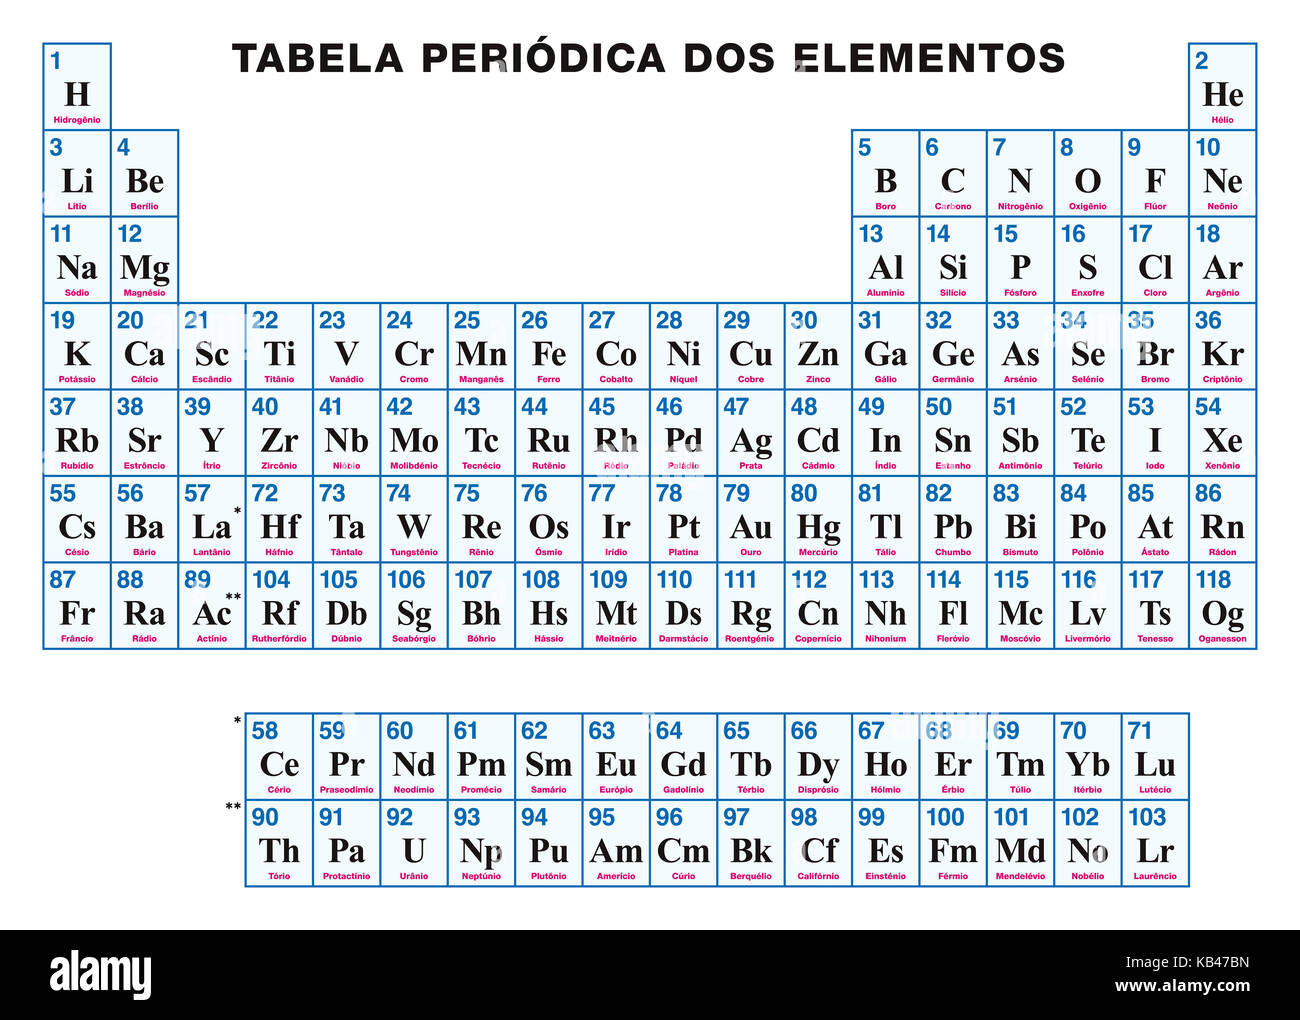 Periodic table of the elements portuguese tabular arrangement of periodic table of the elements portuguese tabular arrangement of chemical elements with atomic numbers symbols and names 118 confirmed elements biocorpaavc Images